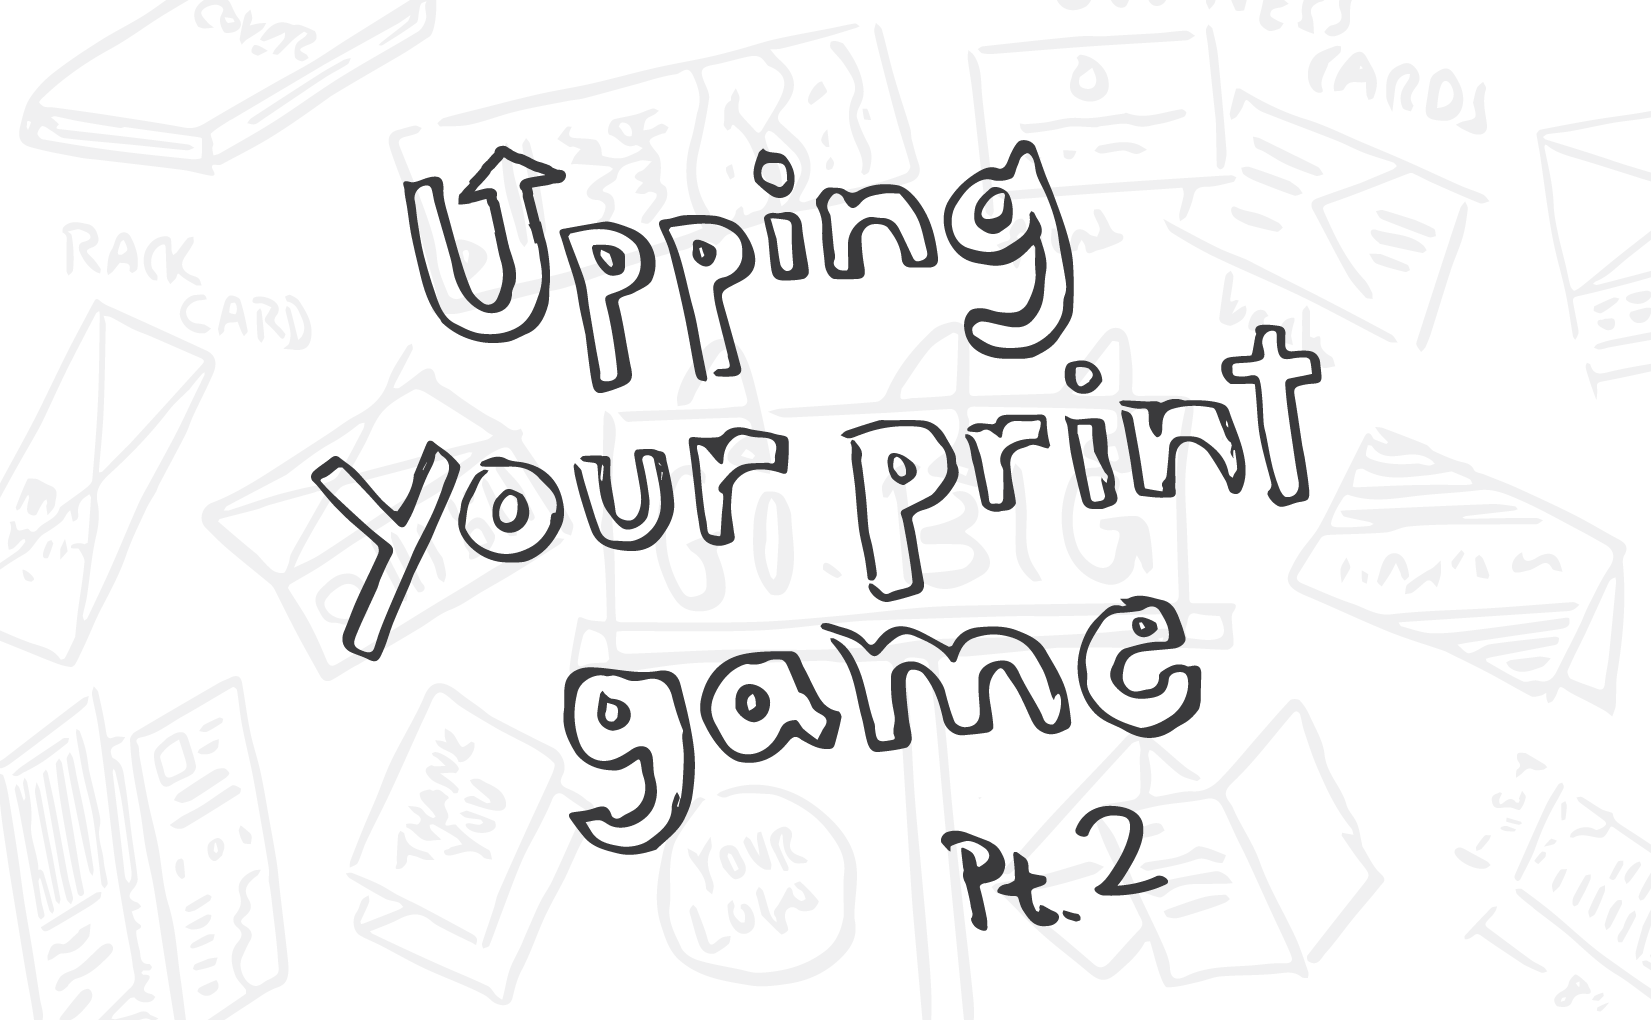 """hand drawn words """"upping your print game"""""""